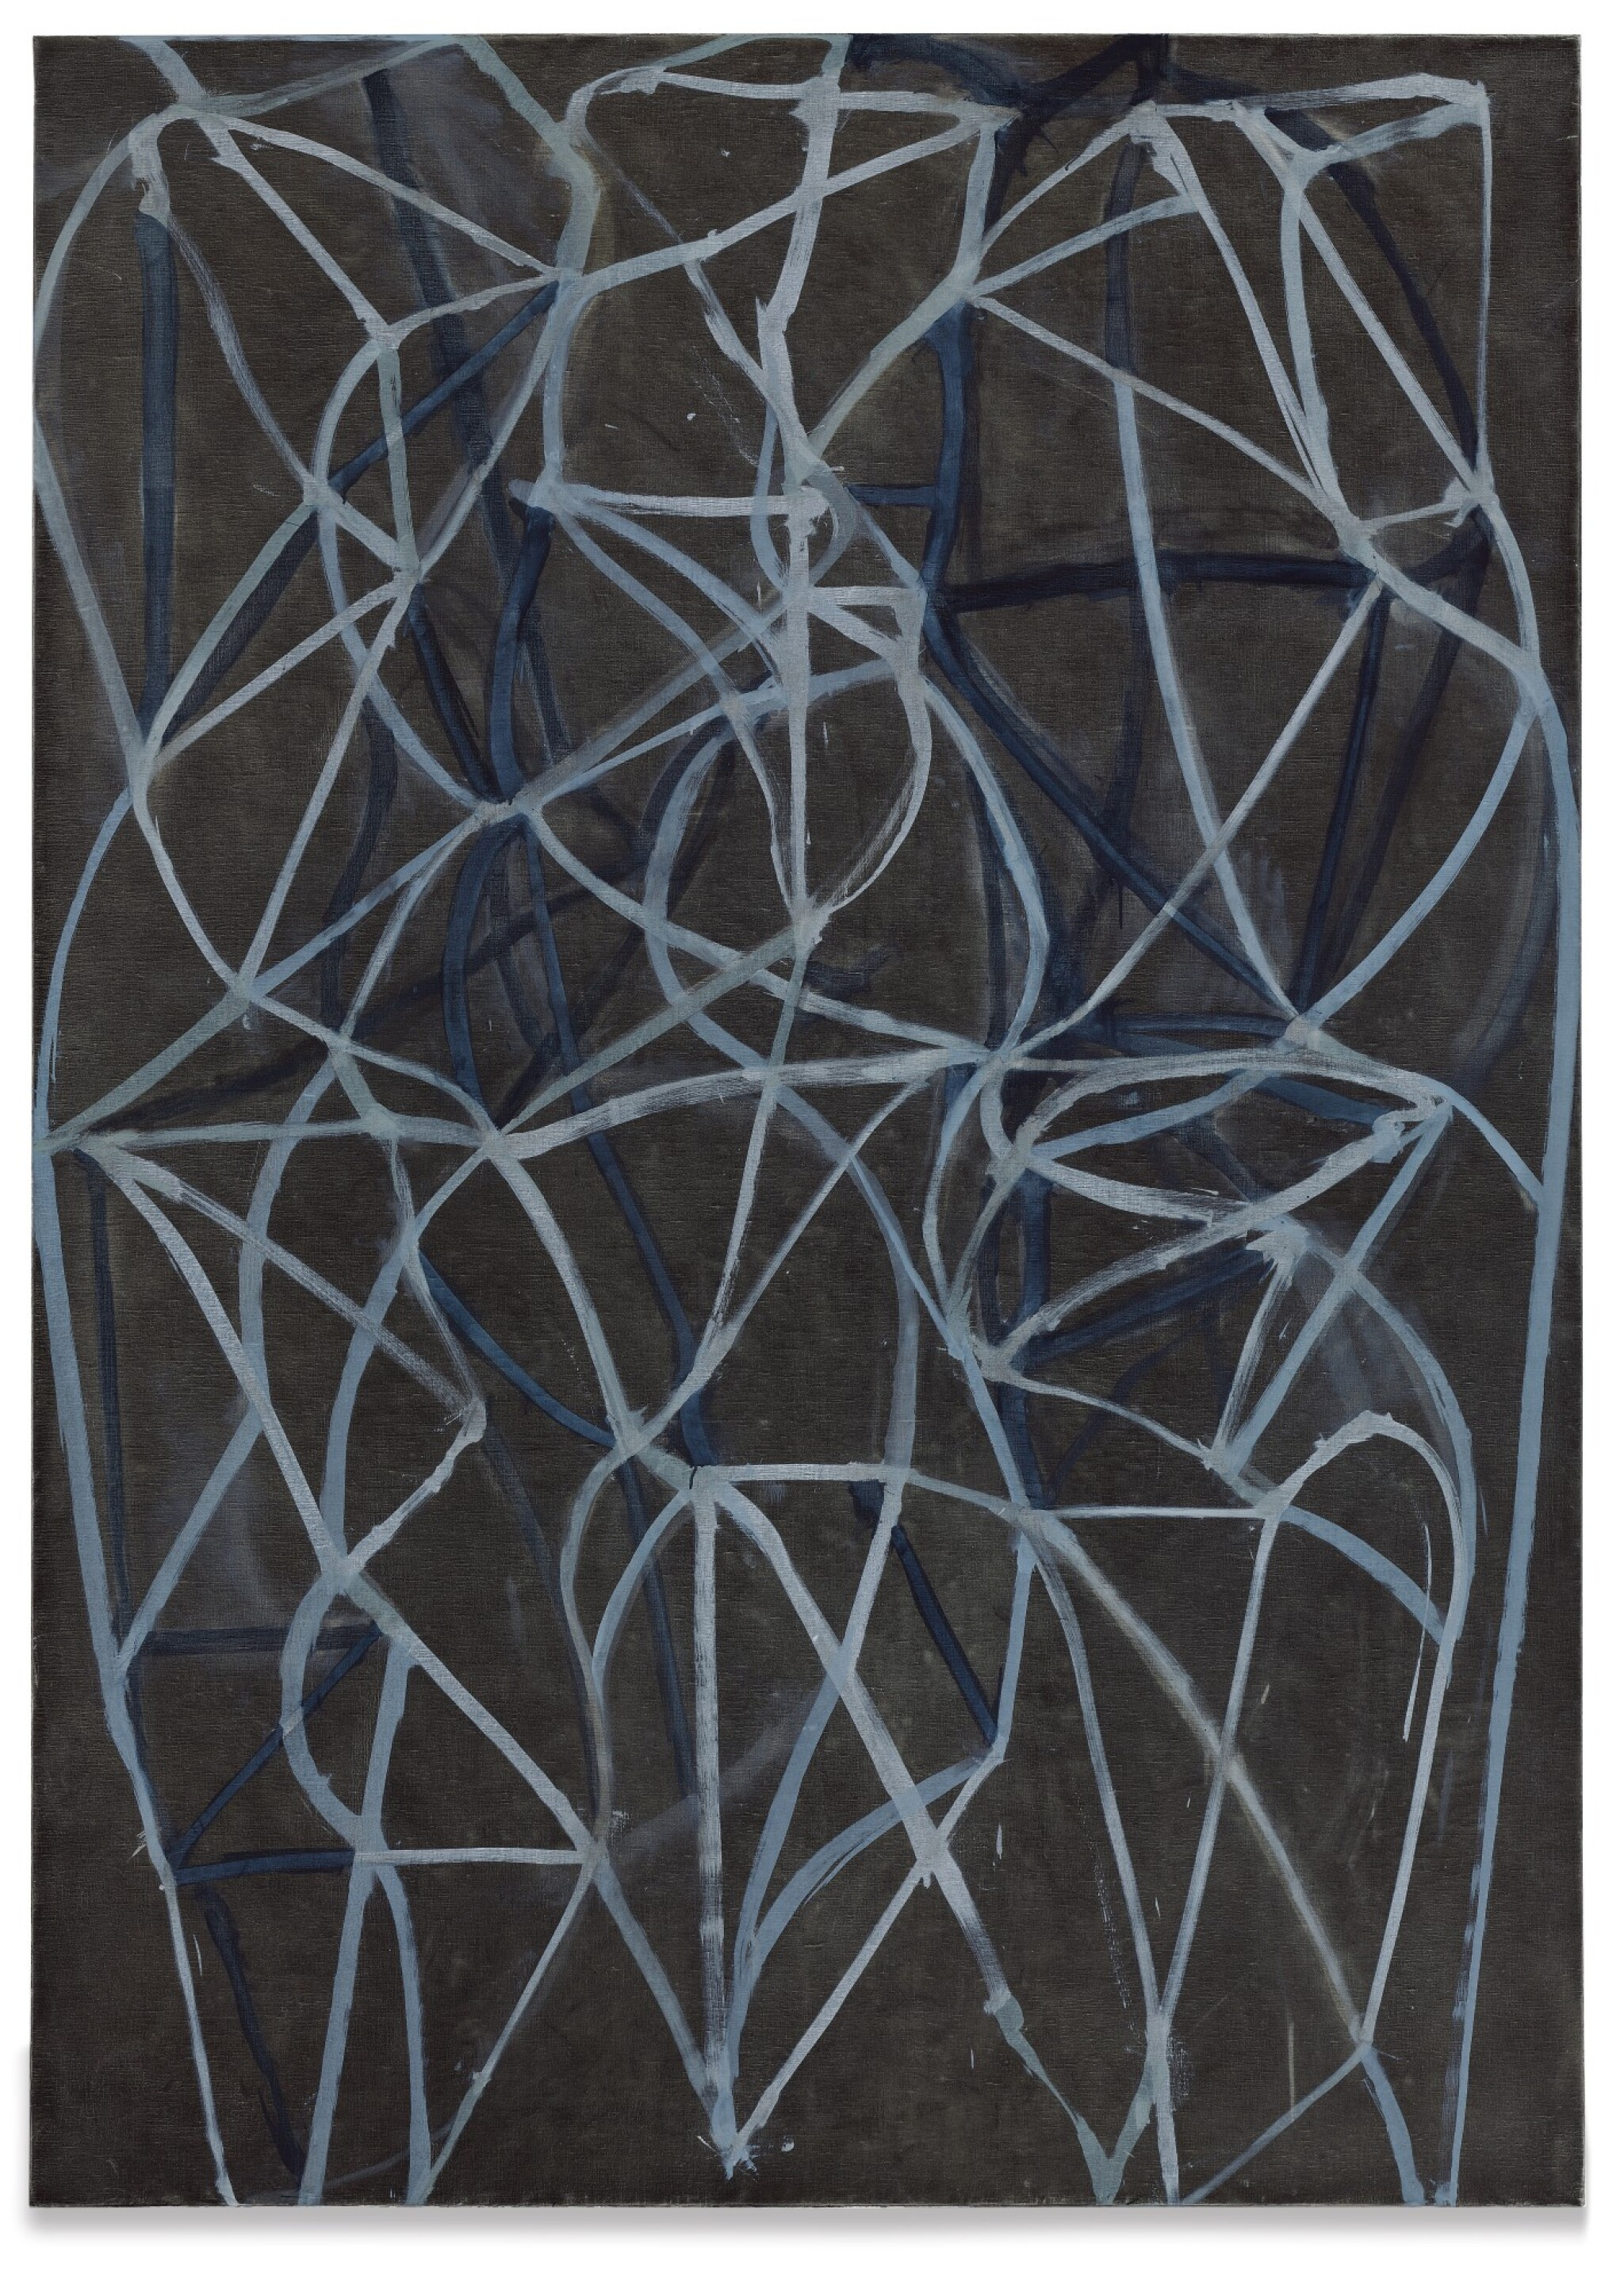 View 1 of Lot 5. BRICE MARDEN | 3.